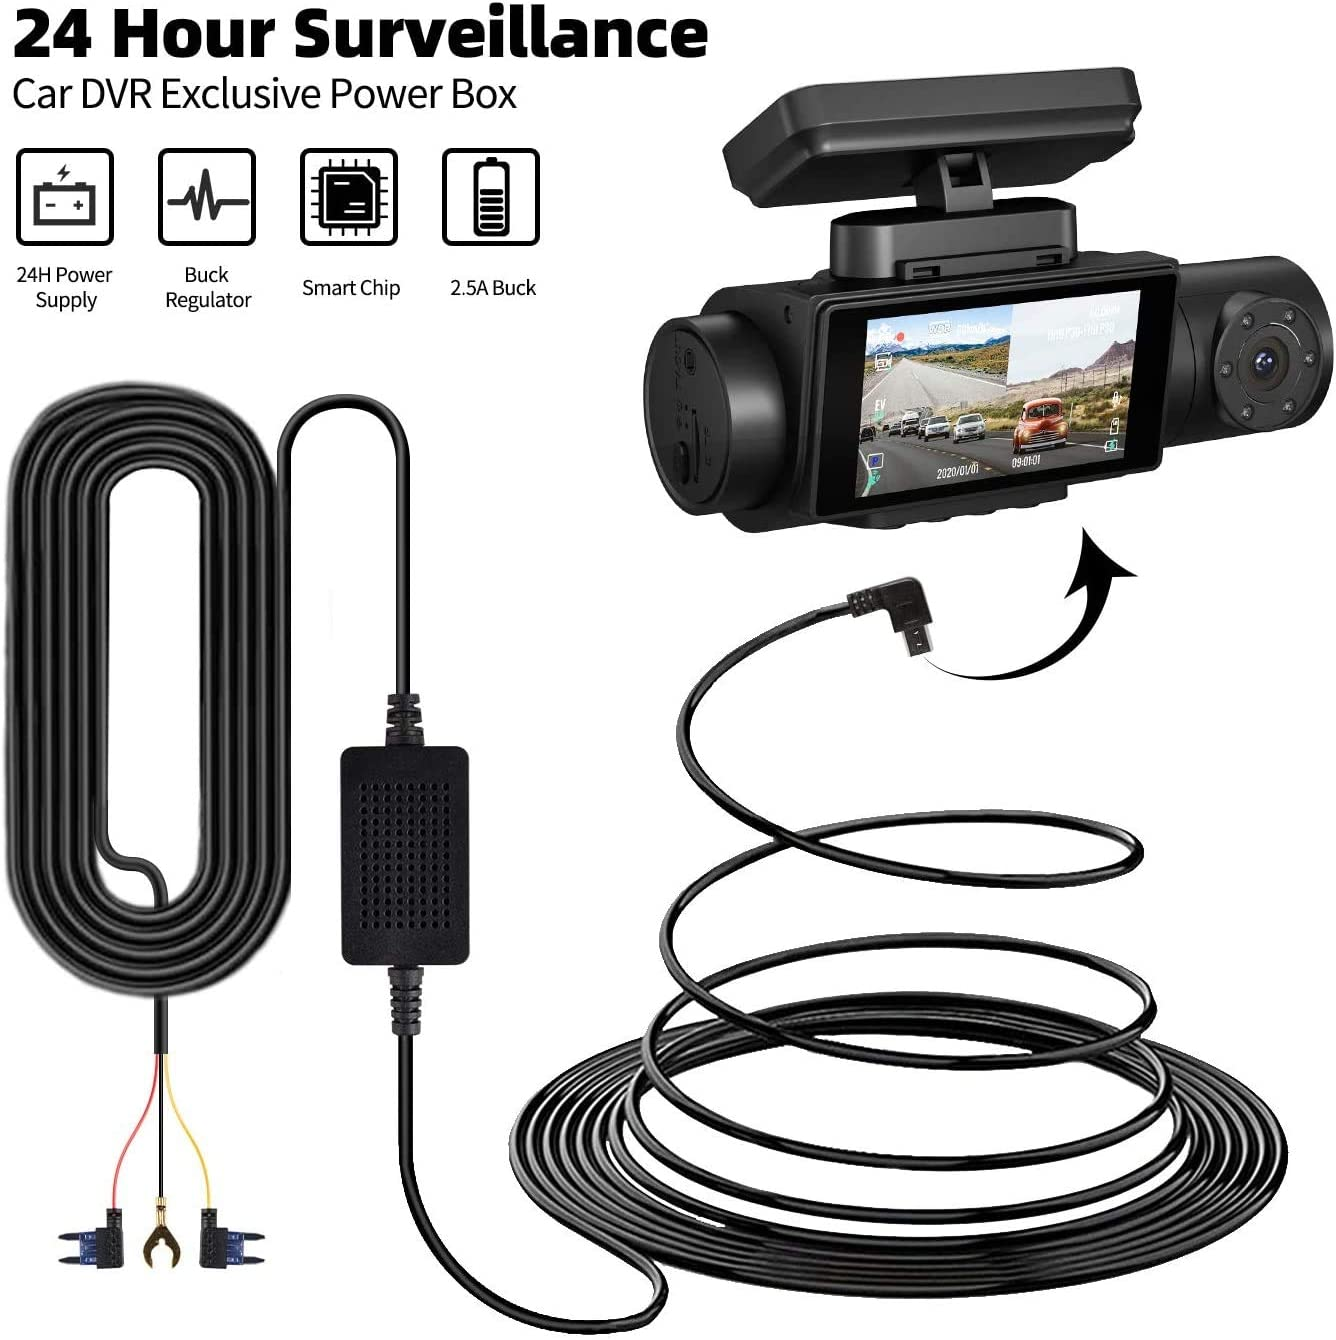 Front Camera 4K Dual dashcam 2560P+ 1080P Infrared Night Vision Parking Monitoring Built-in WiFi GPS G Sensor and Hard Wire AQP Dual Dash cam Dual Sony Sensor